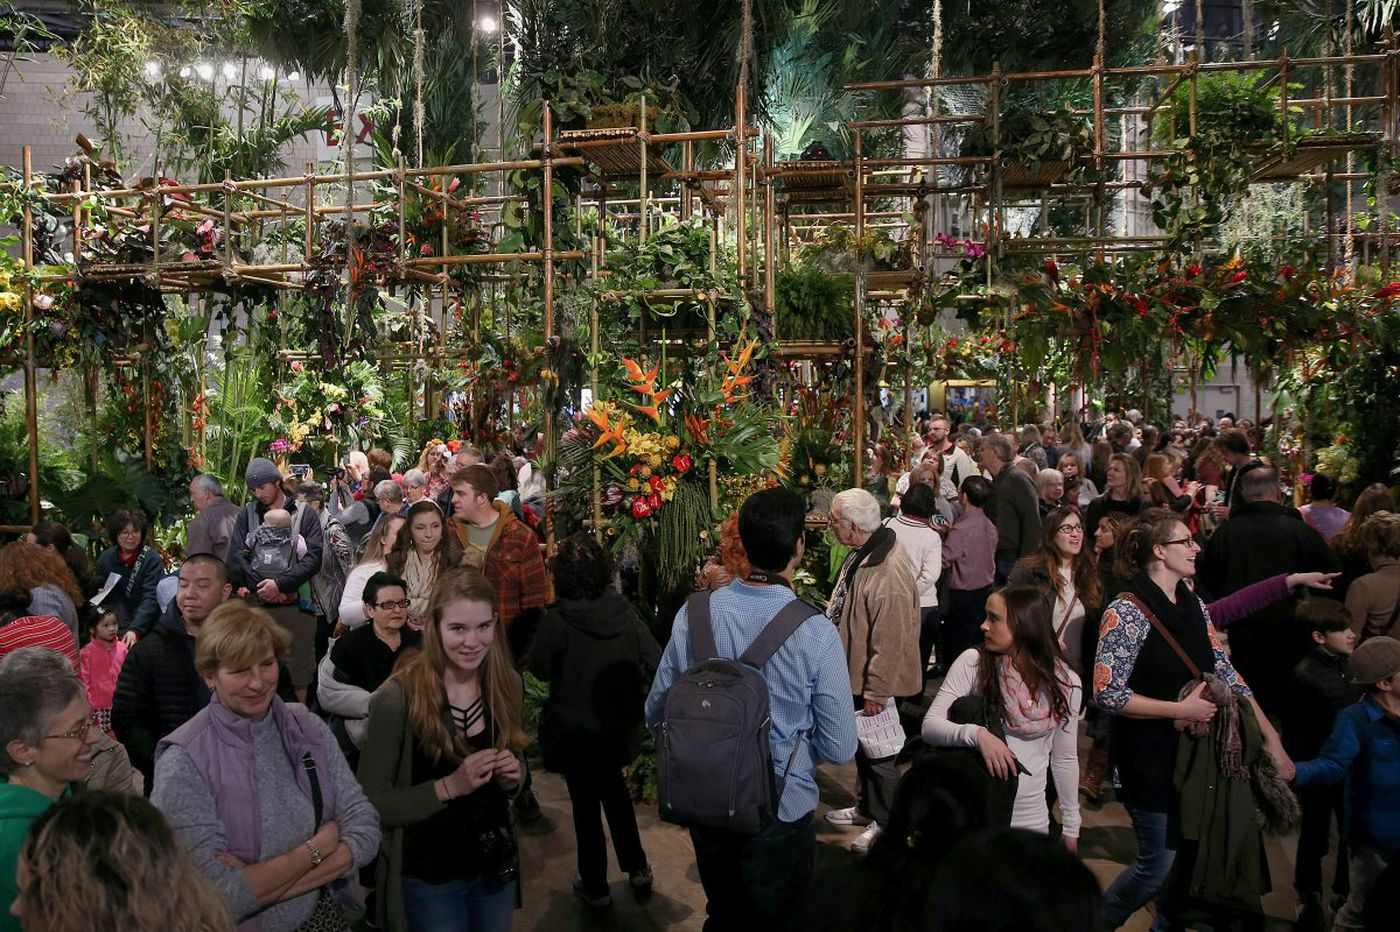 The Flower Show will remain open despite winter storm forecast